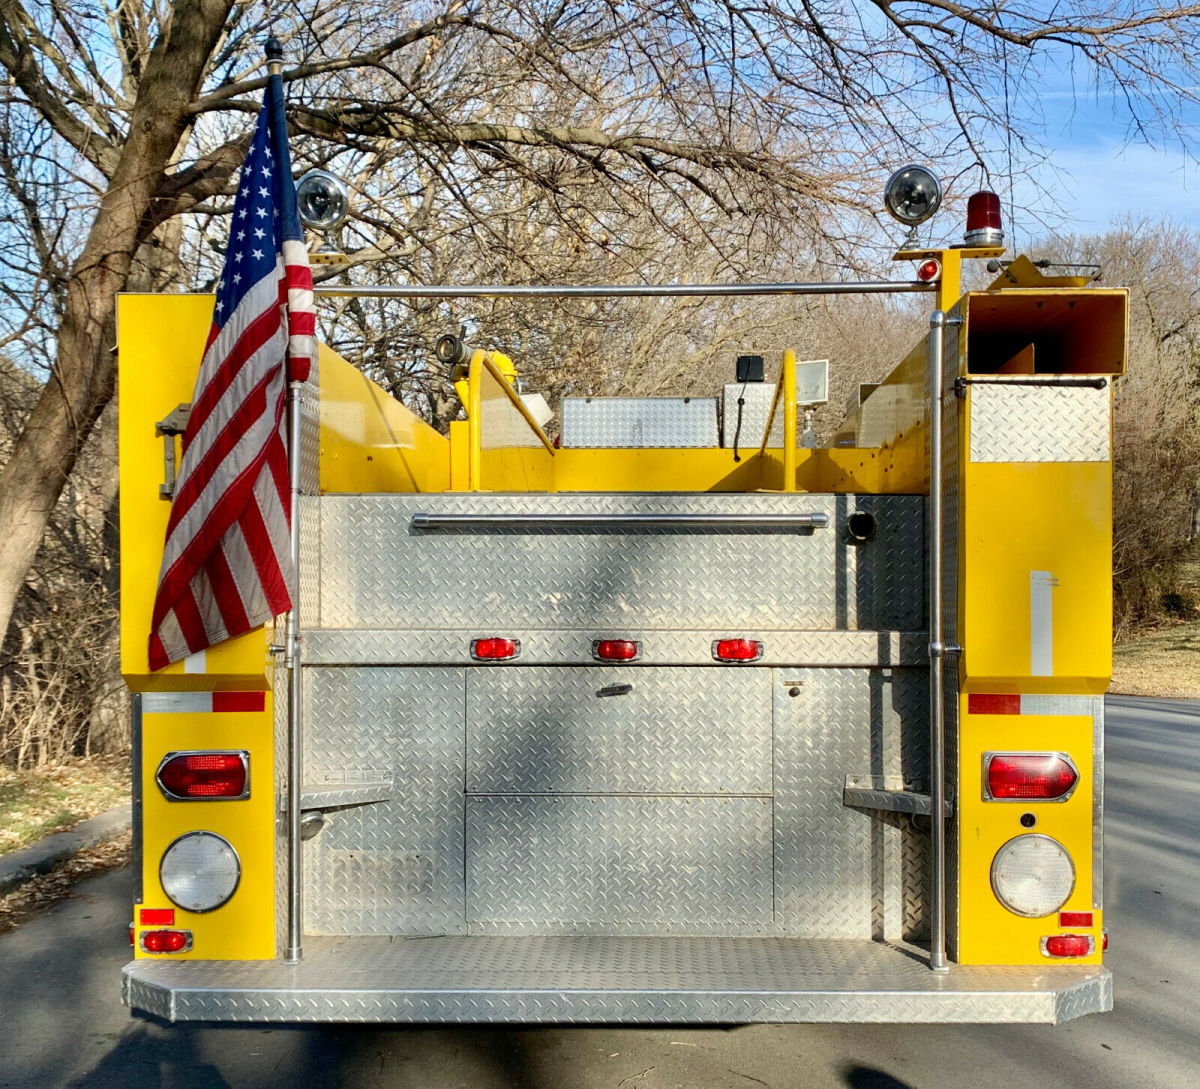 1984 Ford C8000 Fire-Truck For Sale: Photos, Technical